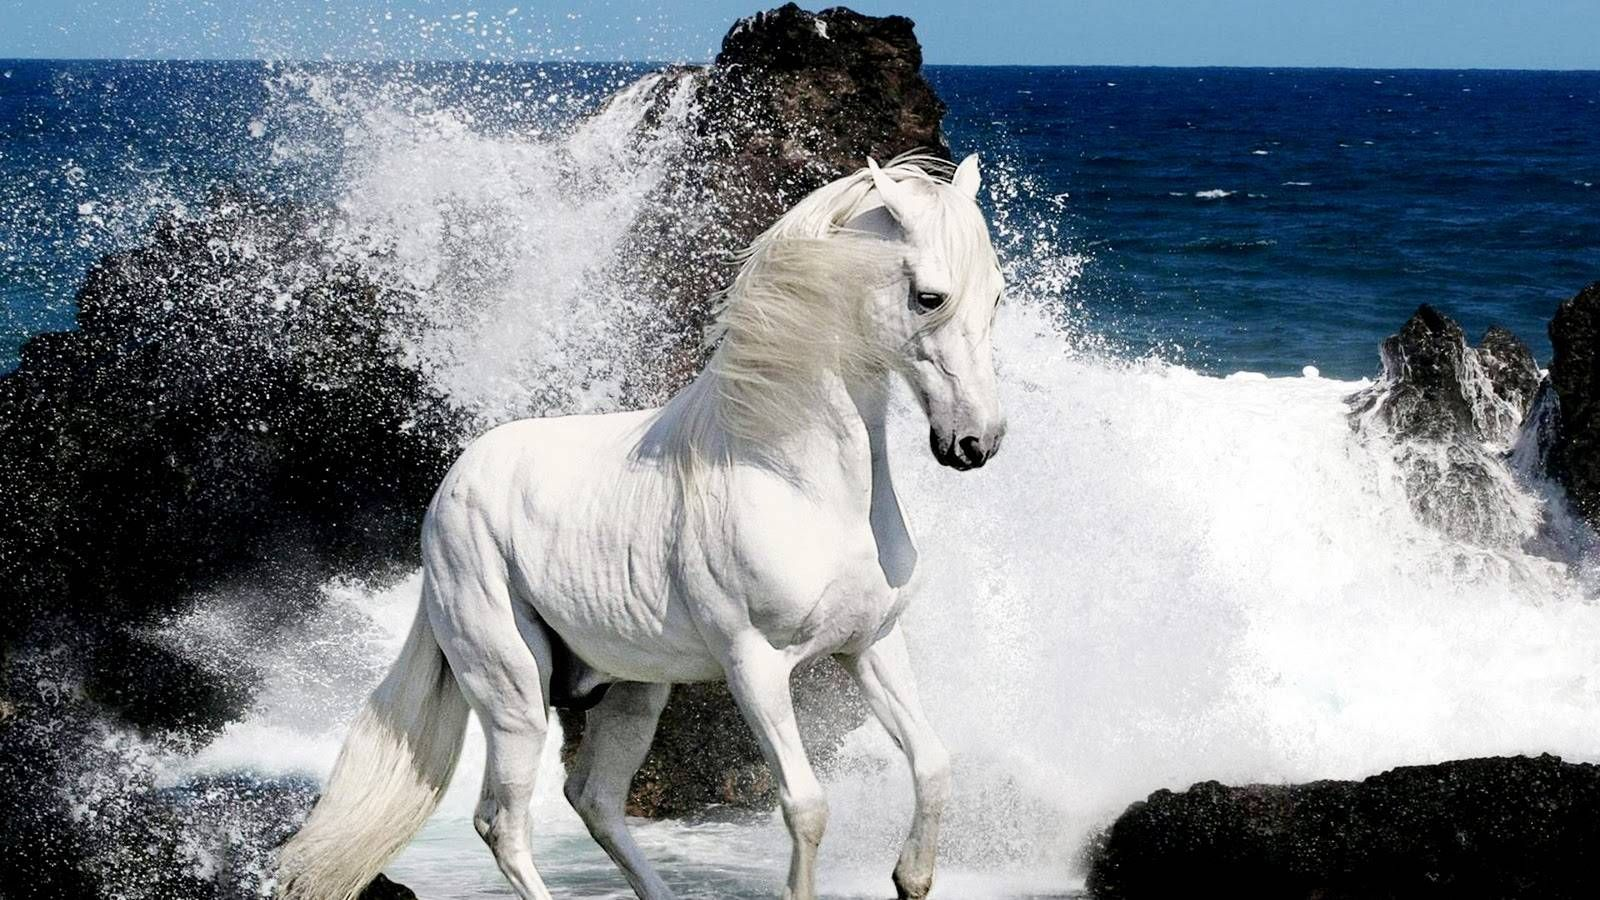 Download Wallpaper Horse Water - 26bcf2538fe046c8fd6309245f145490  Collection_142279.jpg